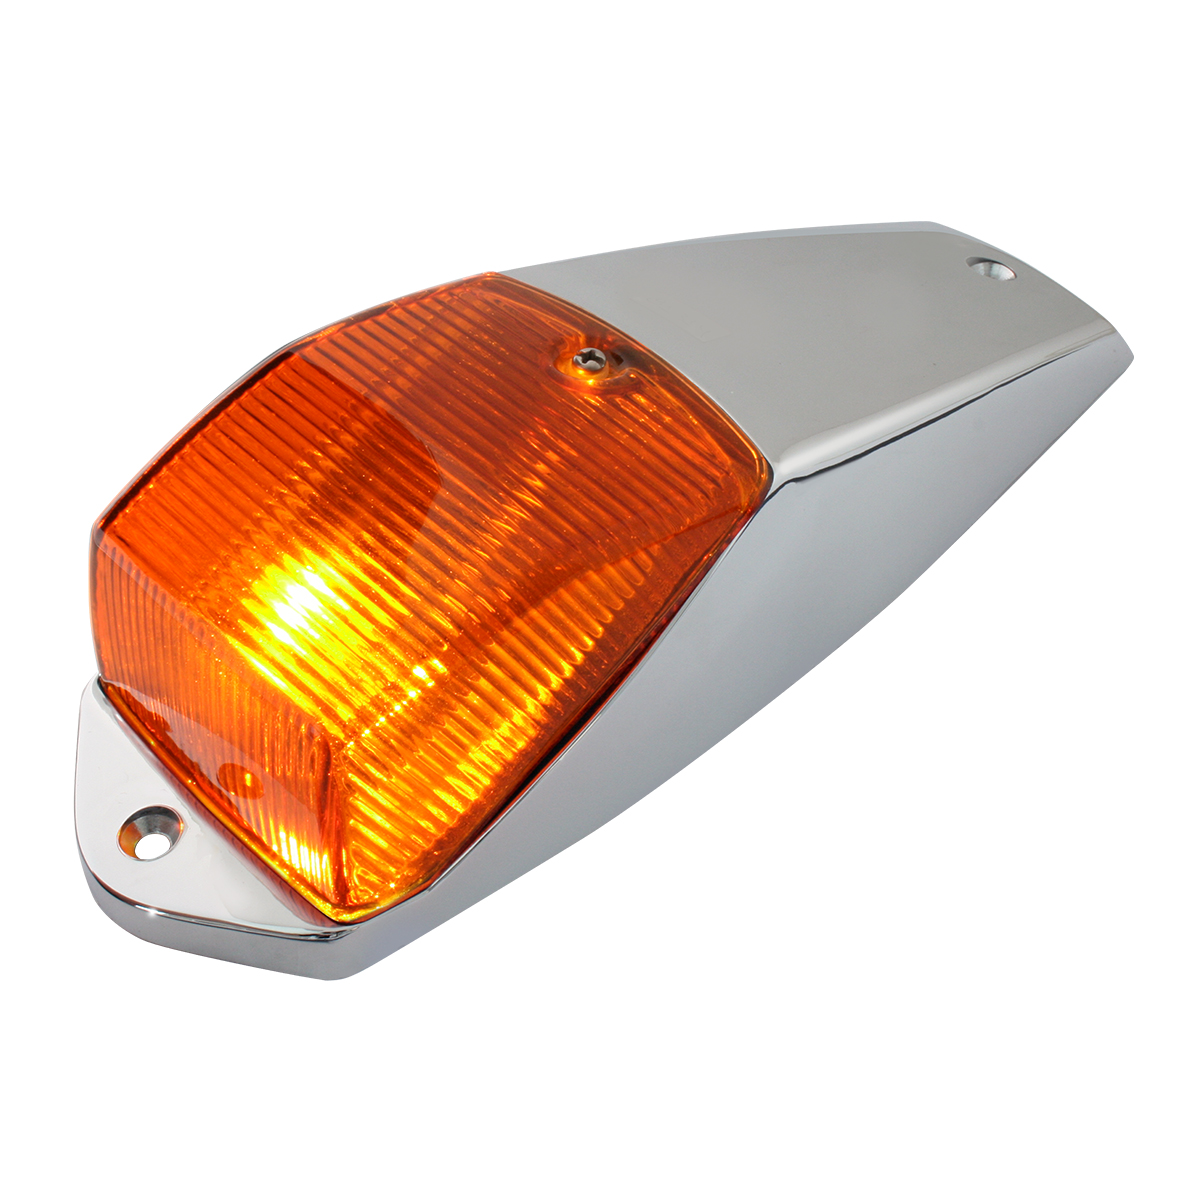 #81314 Dark Amber G5K Cab Marker Light - Chrome Plastic Housing